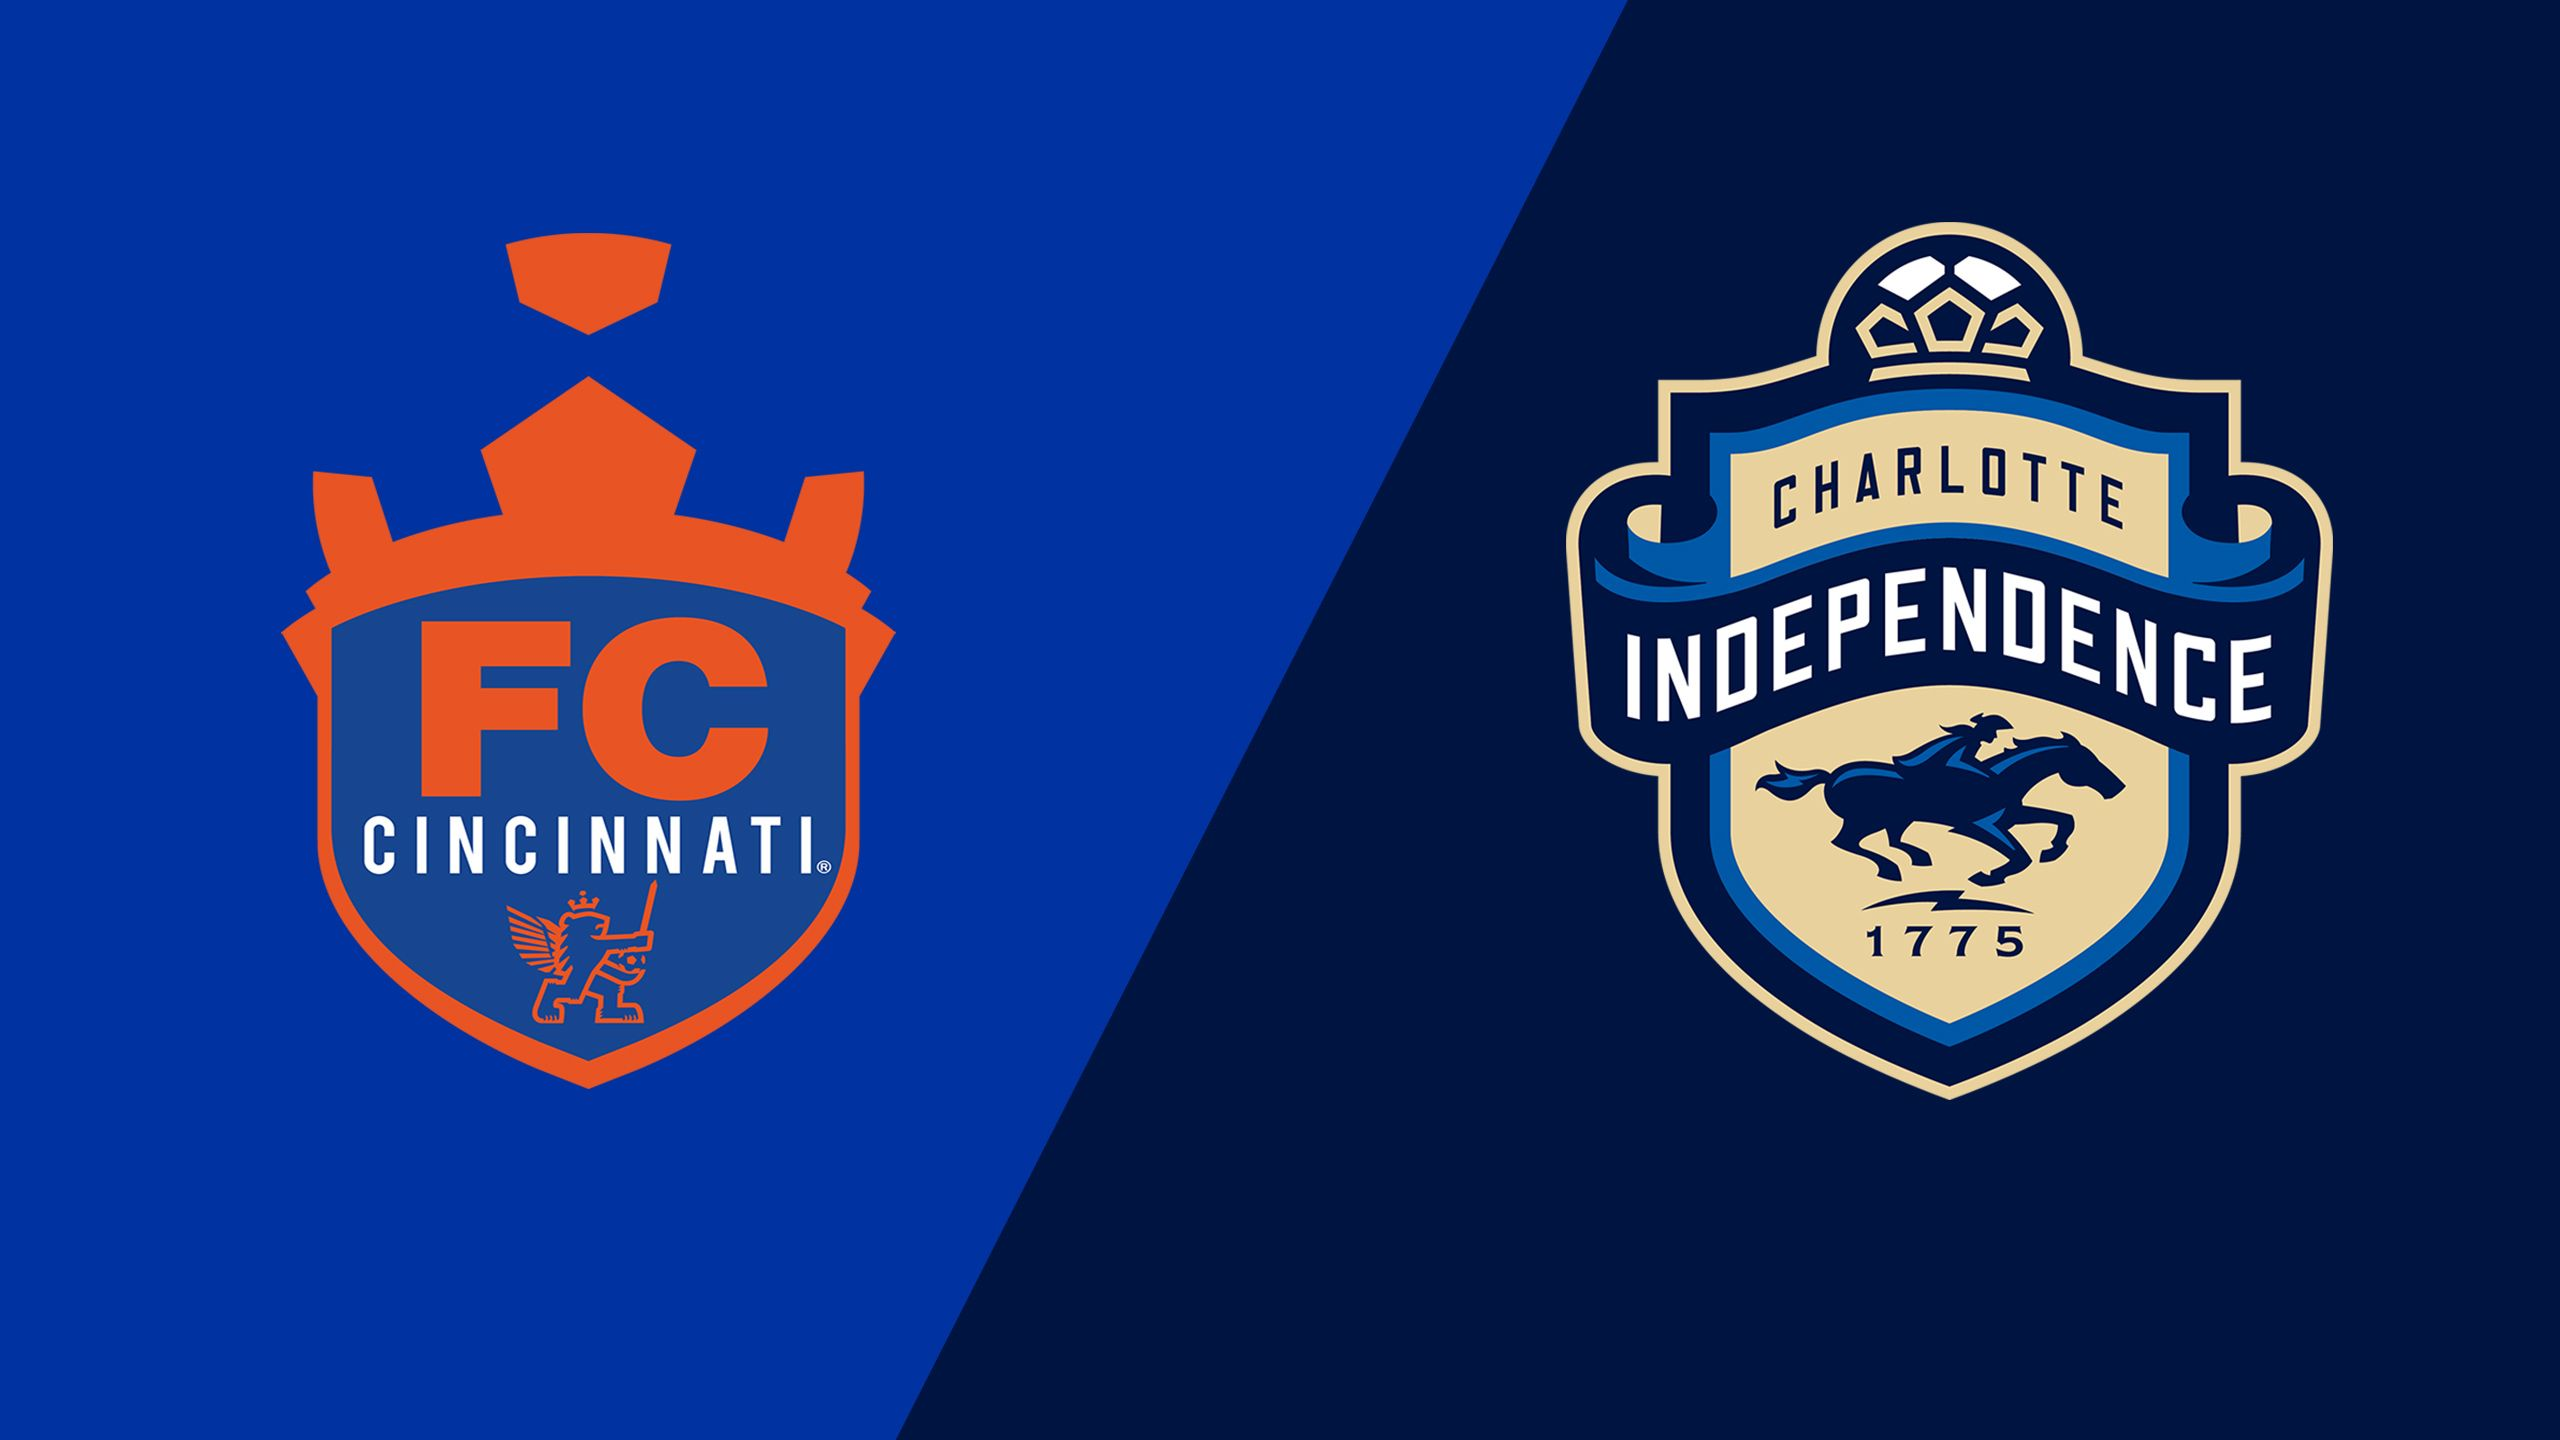 FC Cincinnati vs. Charlotte Independence